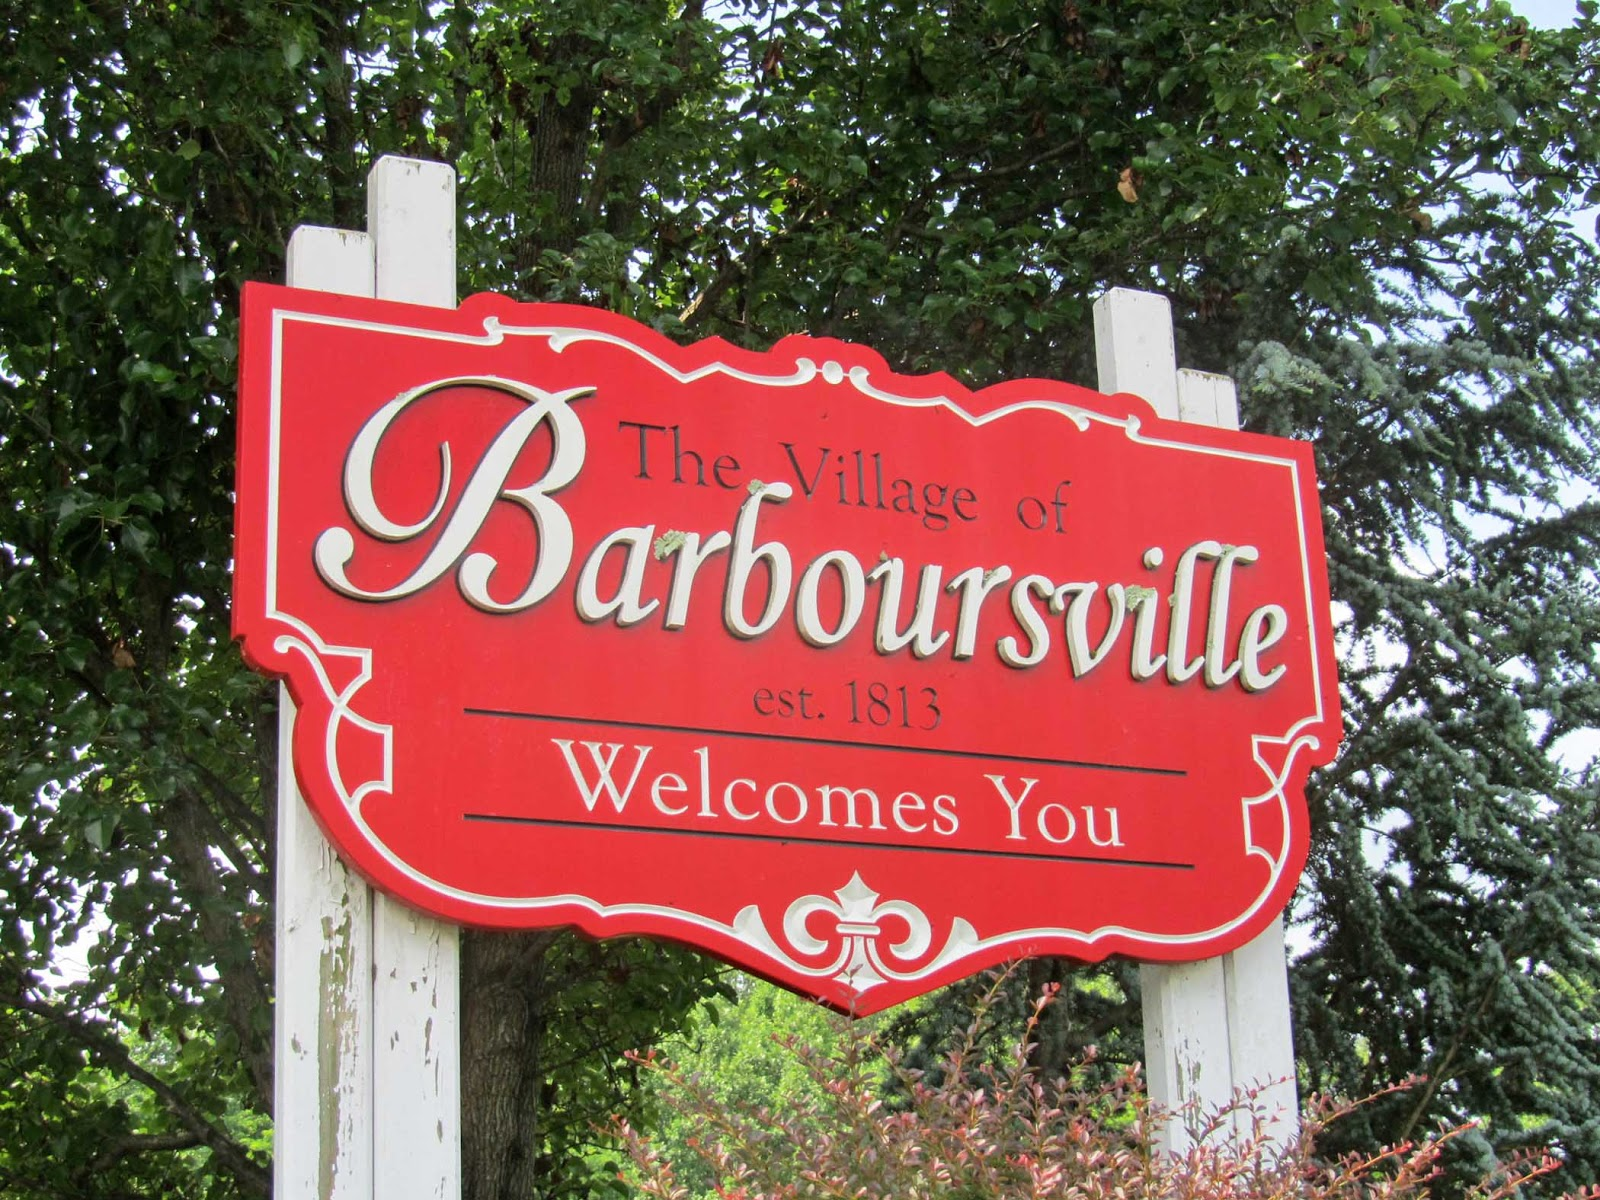 barboursville dating site Join zoosk online dating for free browse photos of barboursville singles, flirt with potential matches and set up a date in barboursville for tonight.